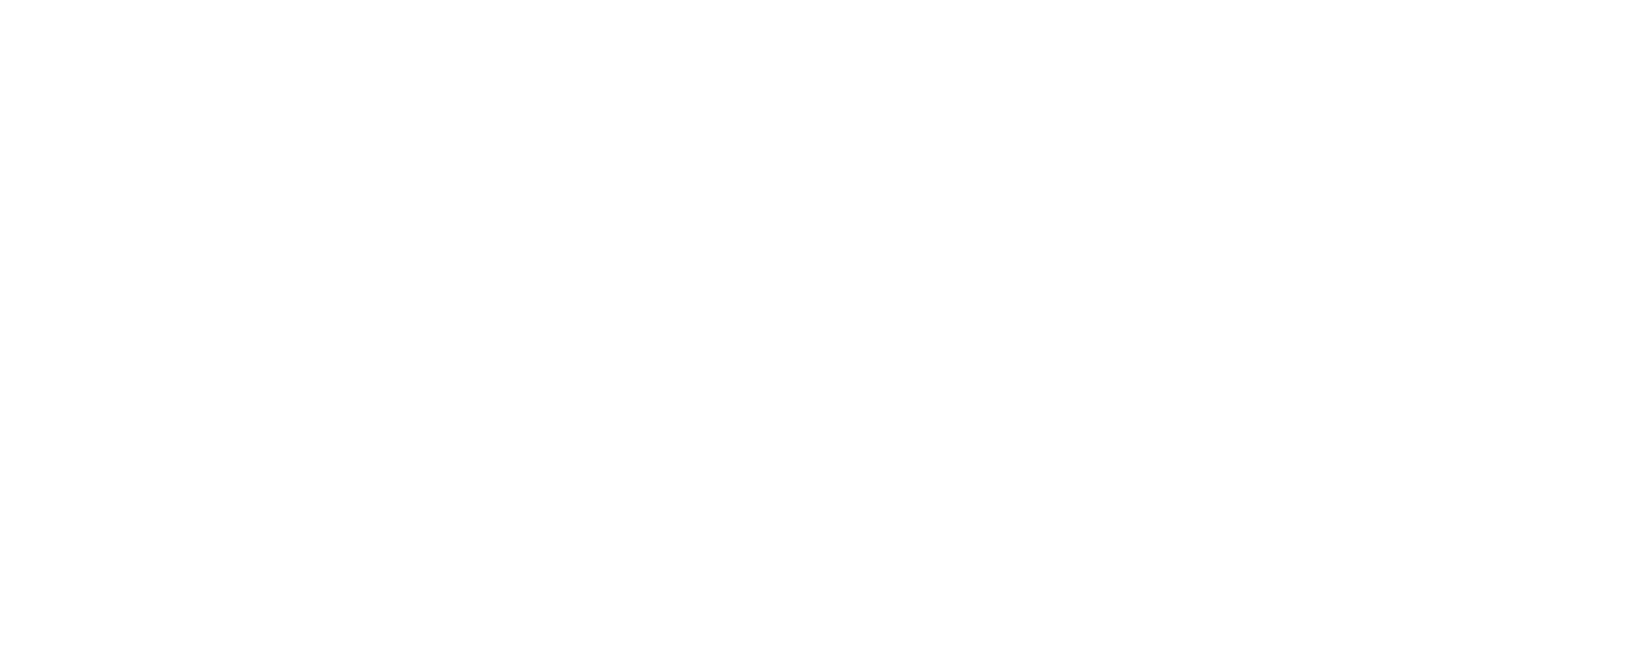 Court Collaboration - Gallagher Developments